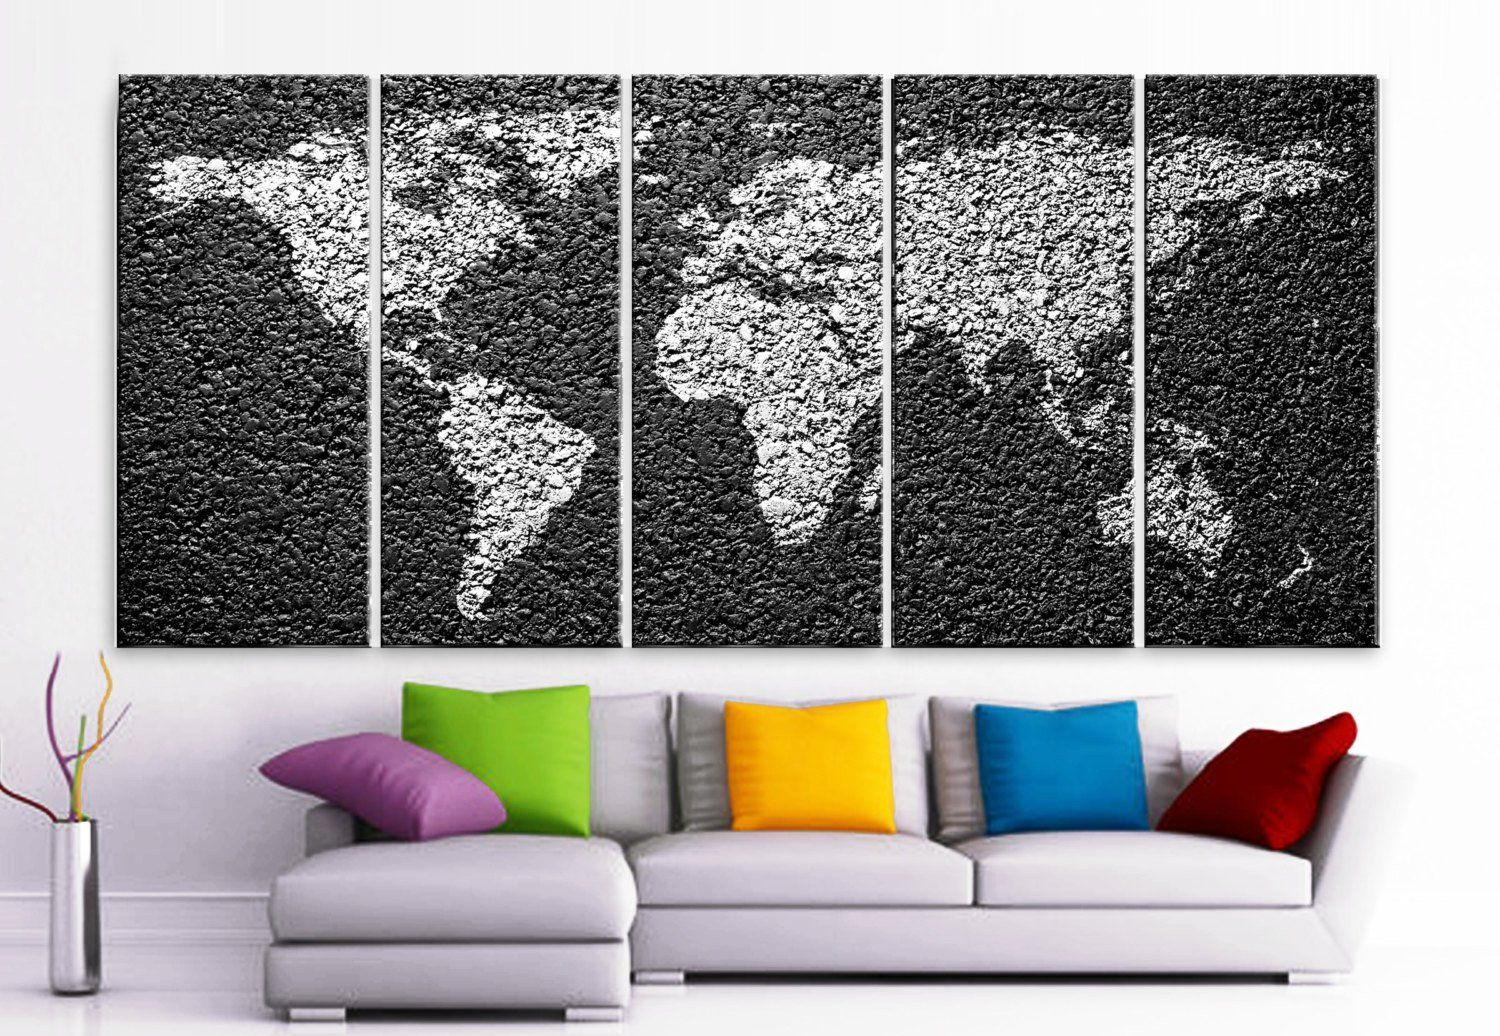 30x 70 5 panels art canvas print world map decorative concrete xlarge 30x 70 5 panels art canvas print world map decorative concrete texture wall home office gumiabroncs Image collections